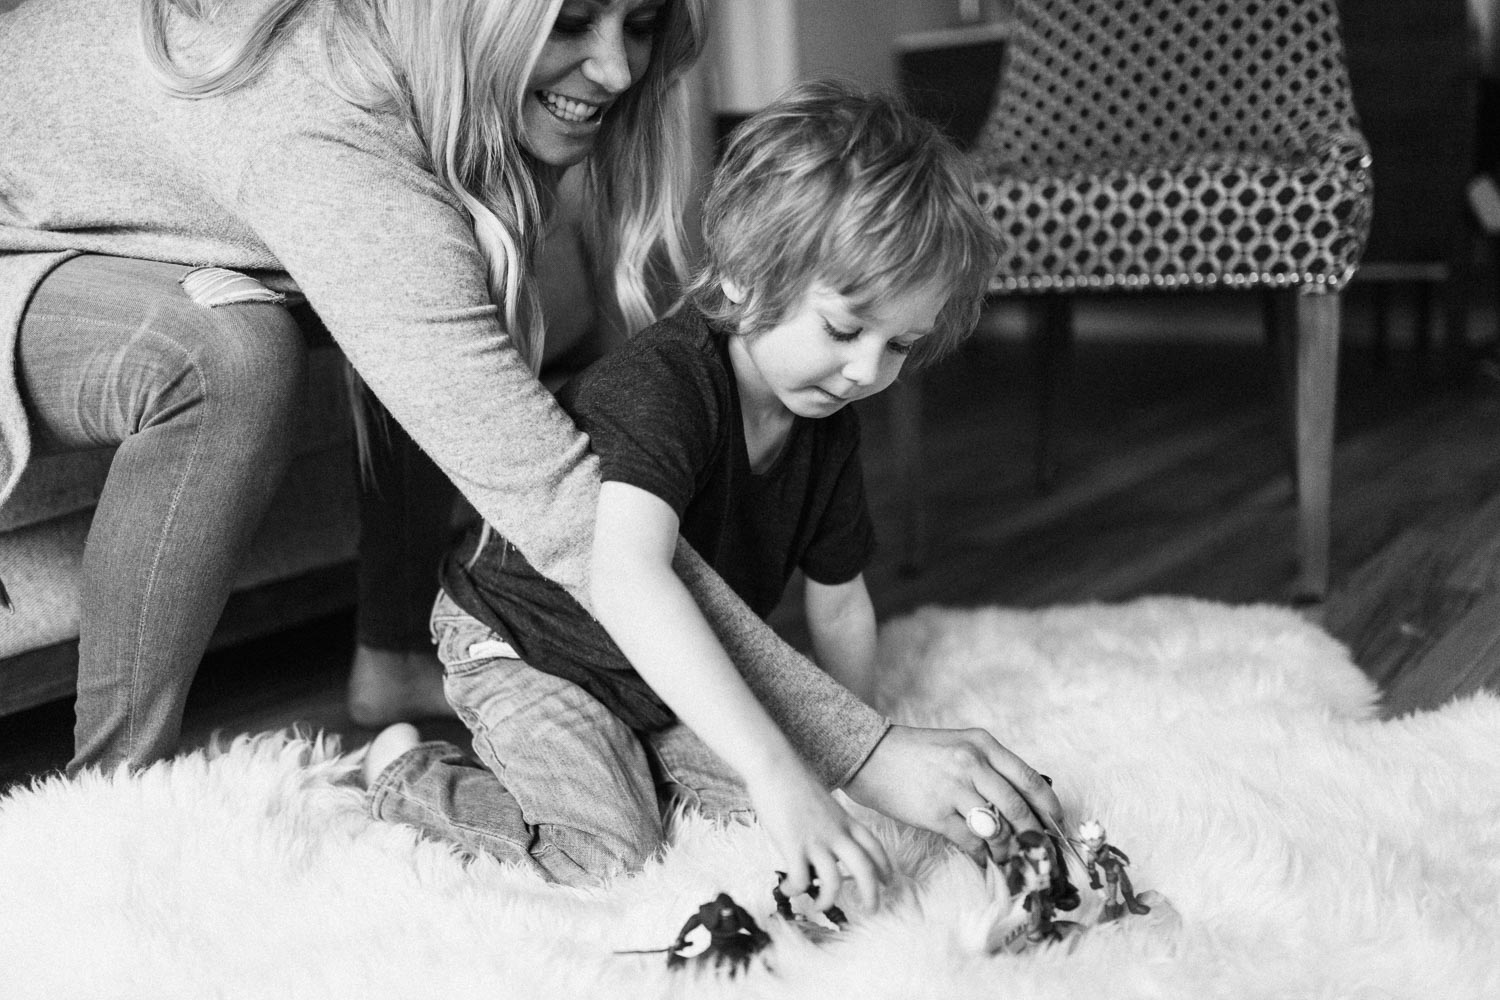 candid-black-and-white-photo-mother-and-son-playing-together-holladay-utah